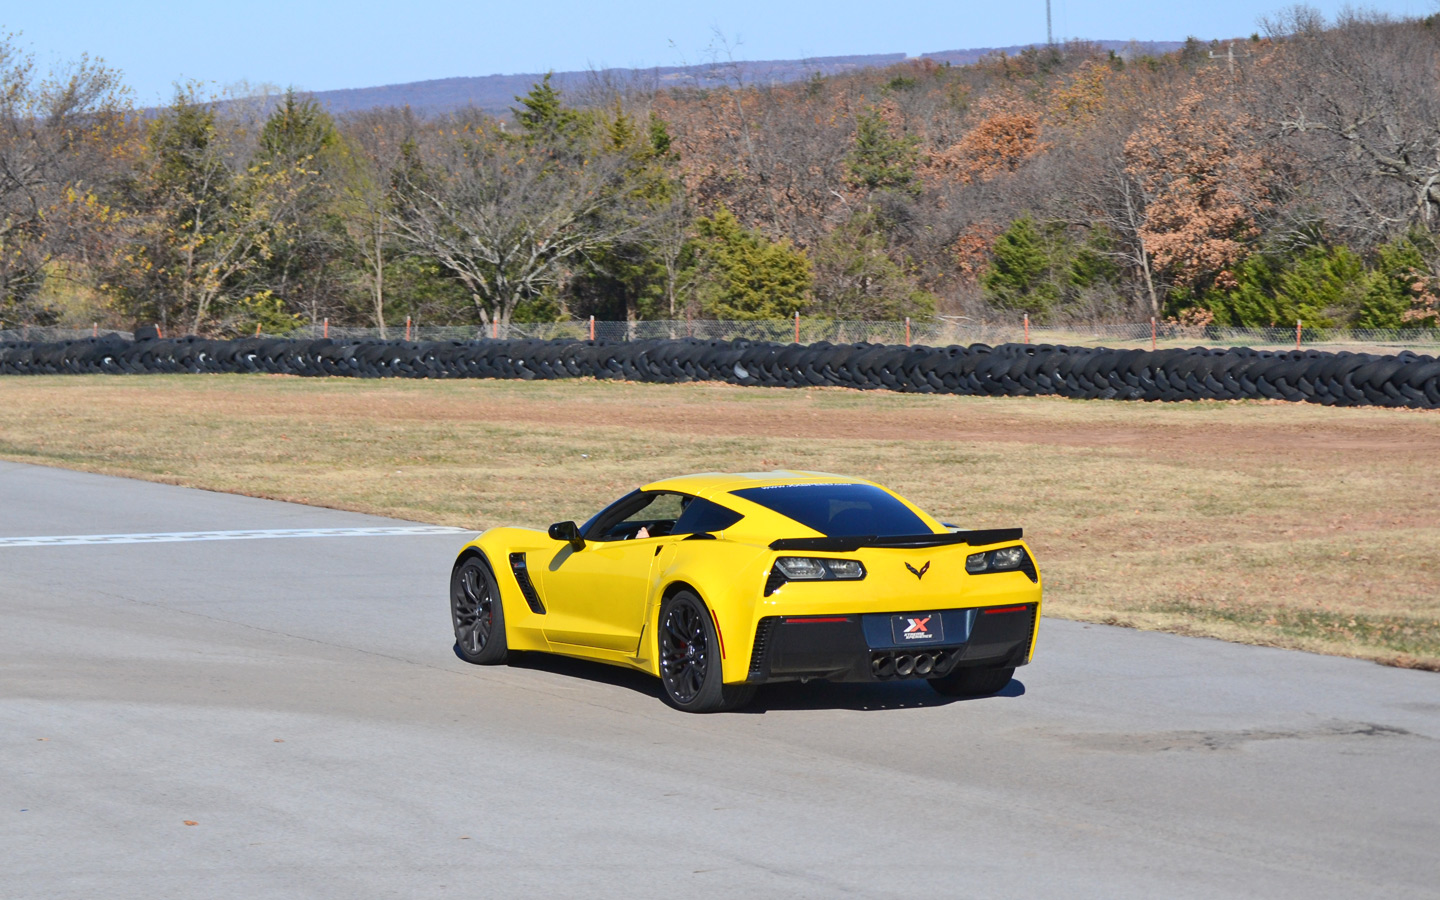 Corvette Z06 Driving Experience Review - Zero To 60 Times